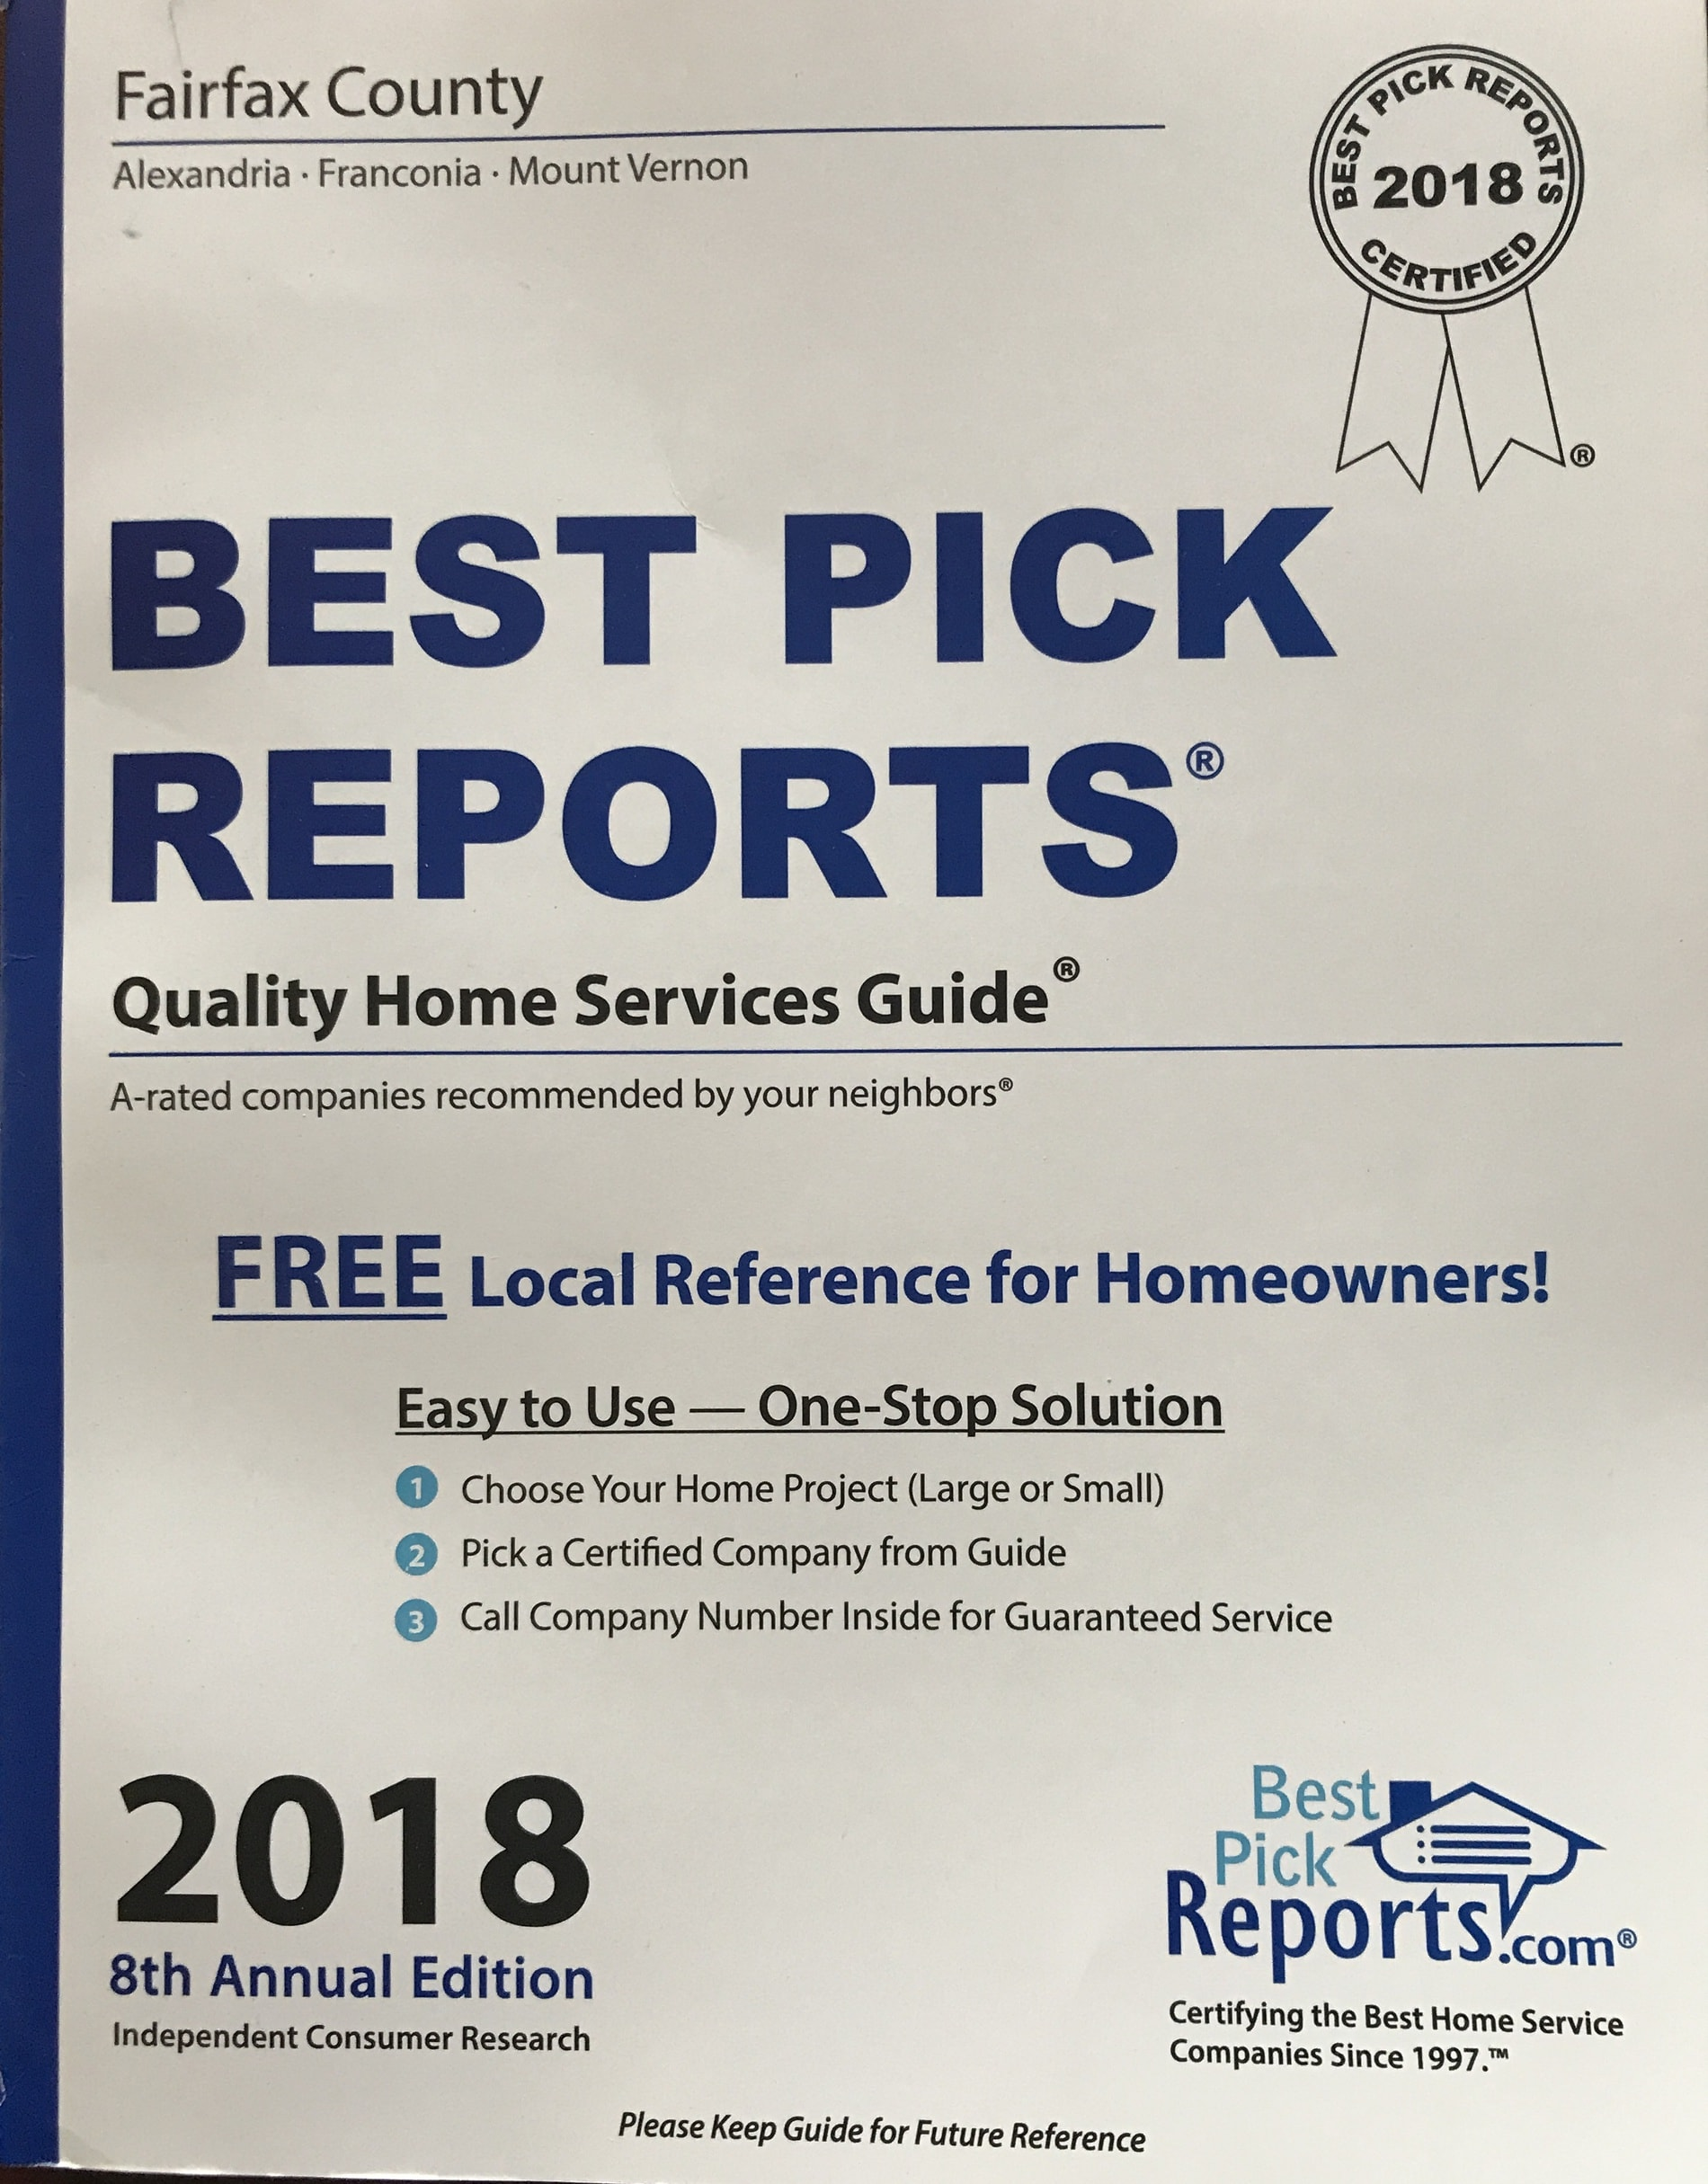 Quality Home Service Guide